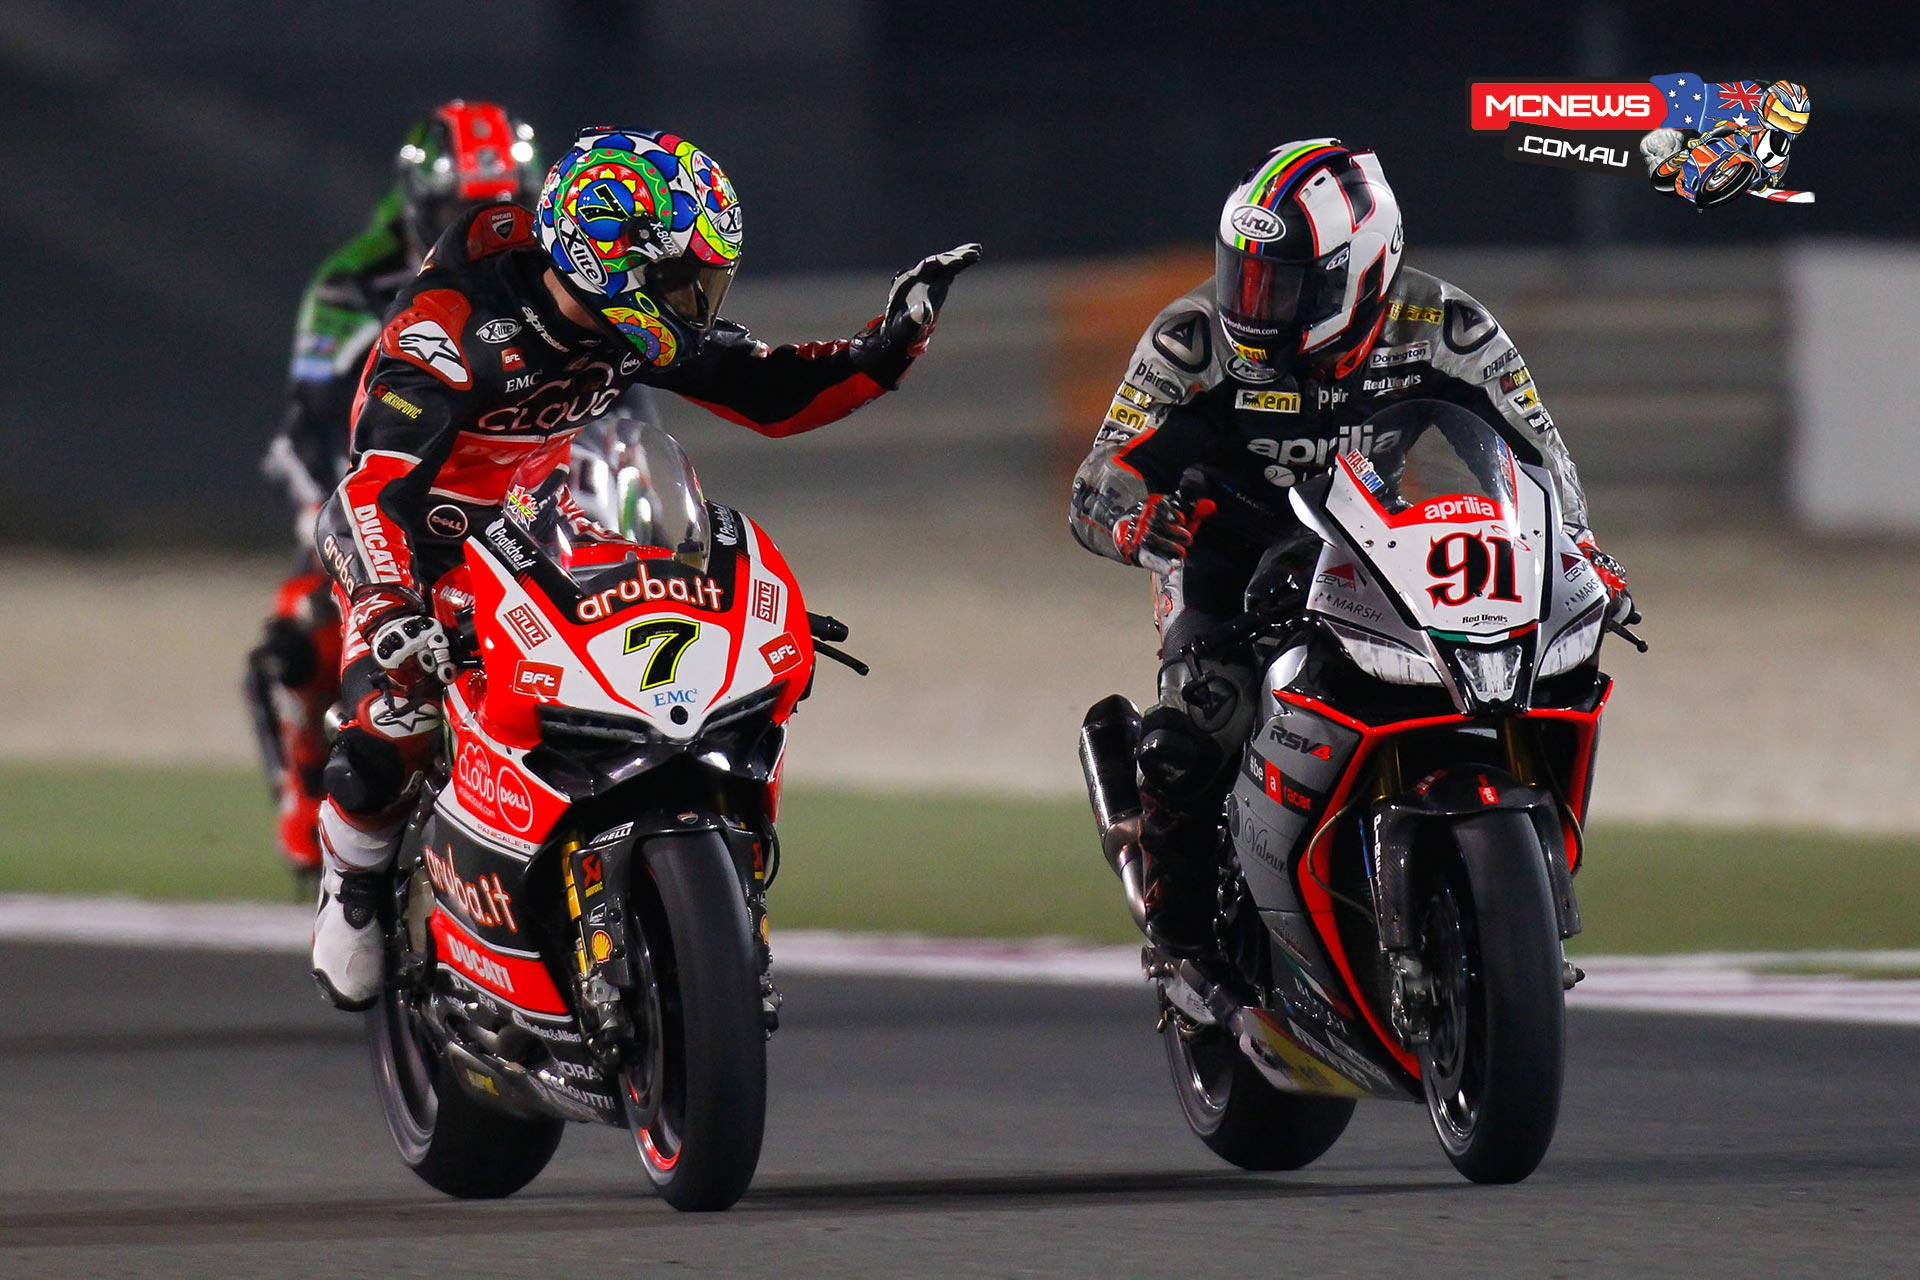 WorldSBK Qatar 2015 Chaz Davies and Leon Haslam